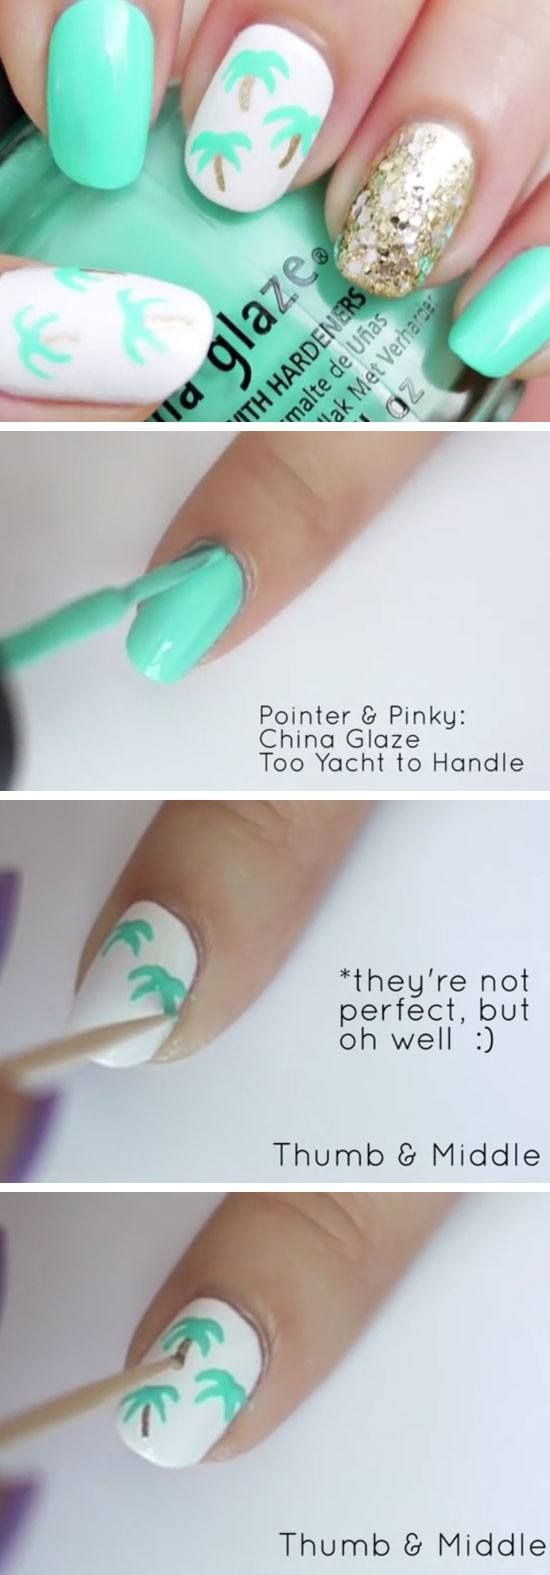 Pattern nail art designs fancy nail art for prom simple nail art lines - 18 Super Cute Summer Nail Designs For 2017 Teen Nail Designsnail Designs Summer Easynail Ideas For Summersummer Nail Artsummer